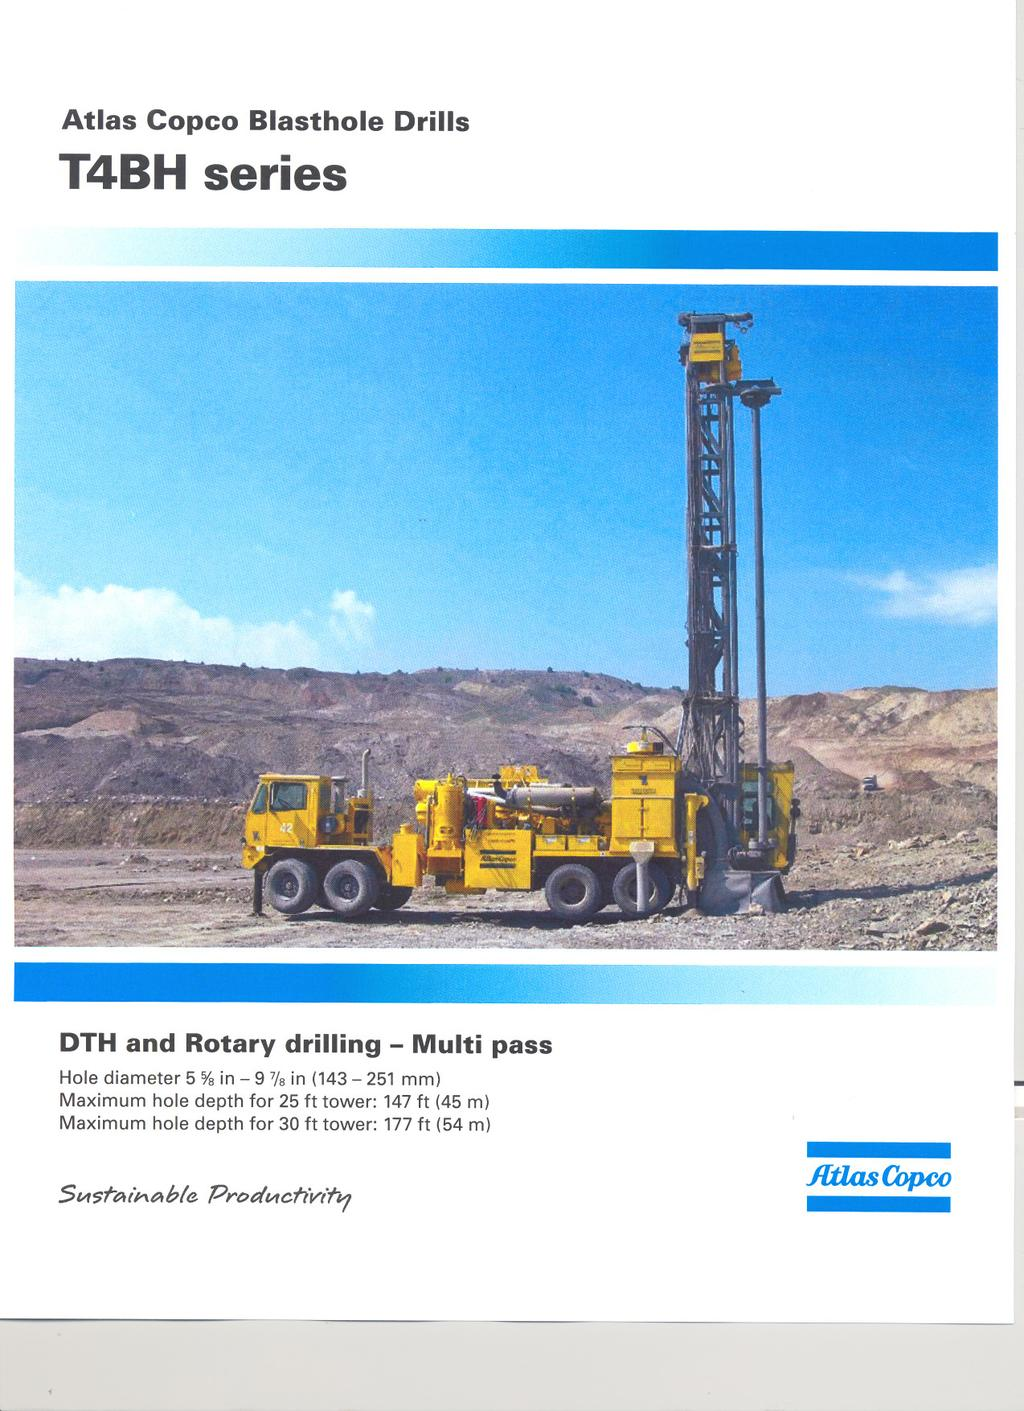 Atlas Copco Blasthole T4BH series Drills DTH and Rotary drilling Multi pass Holediameter 5 %in 97/8 in (143